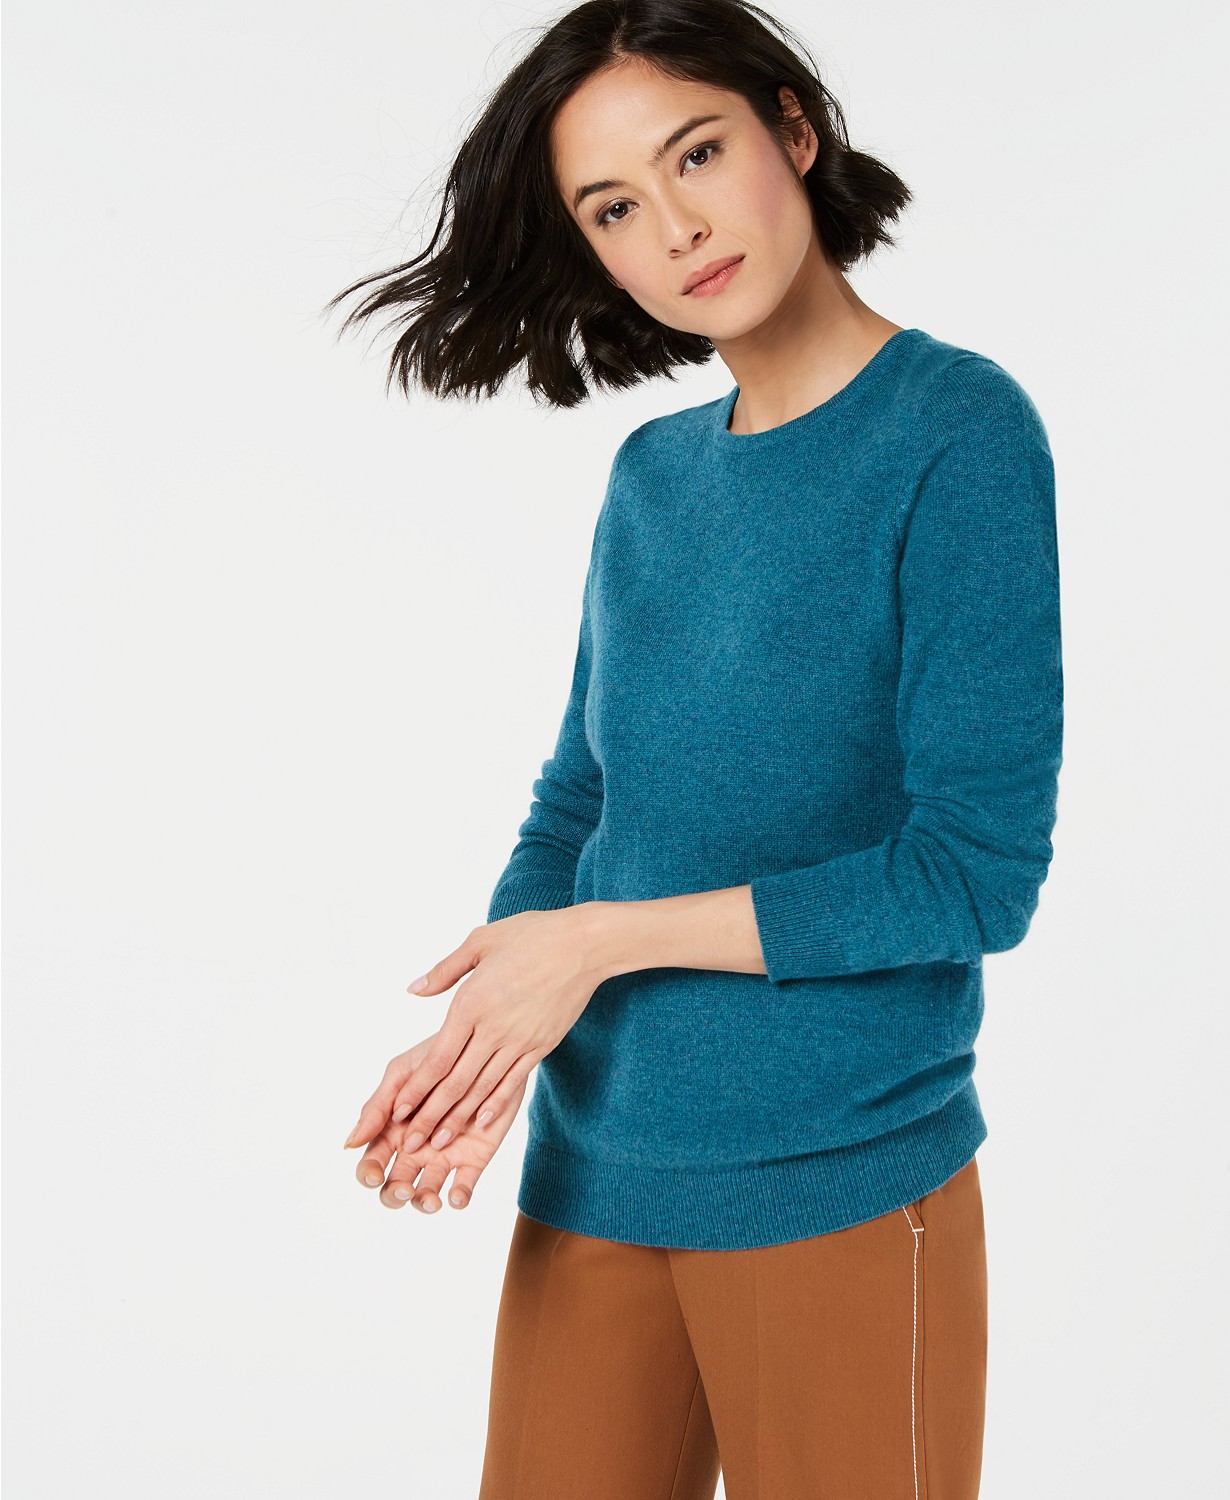 Cashmere Sweater Up to 75% Off!